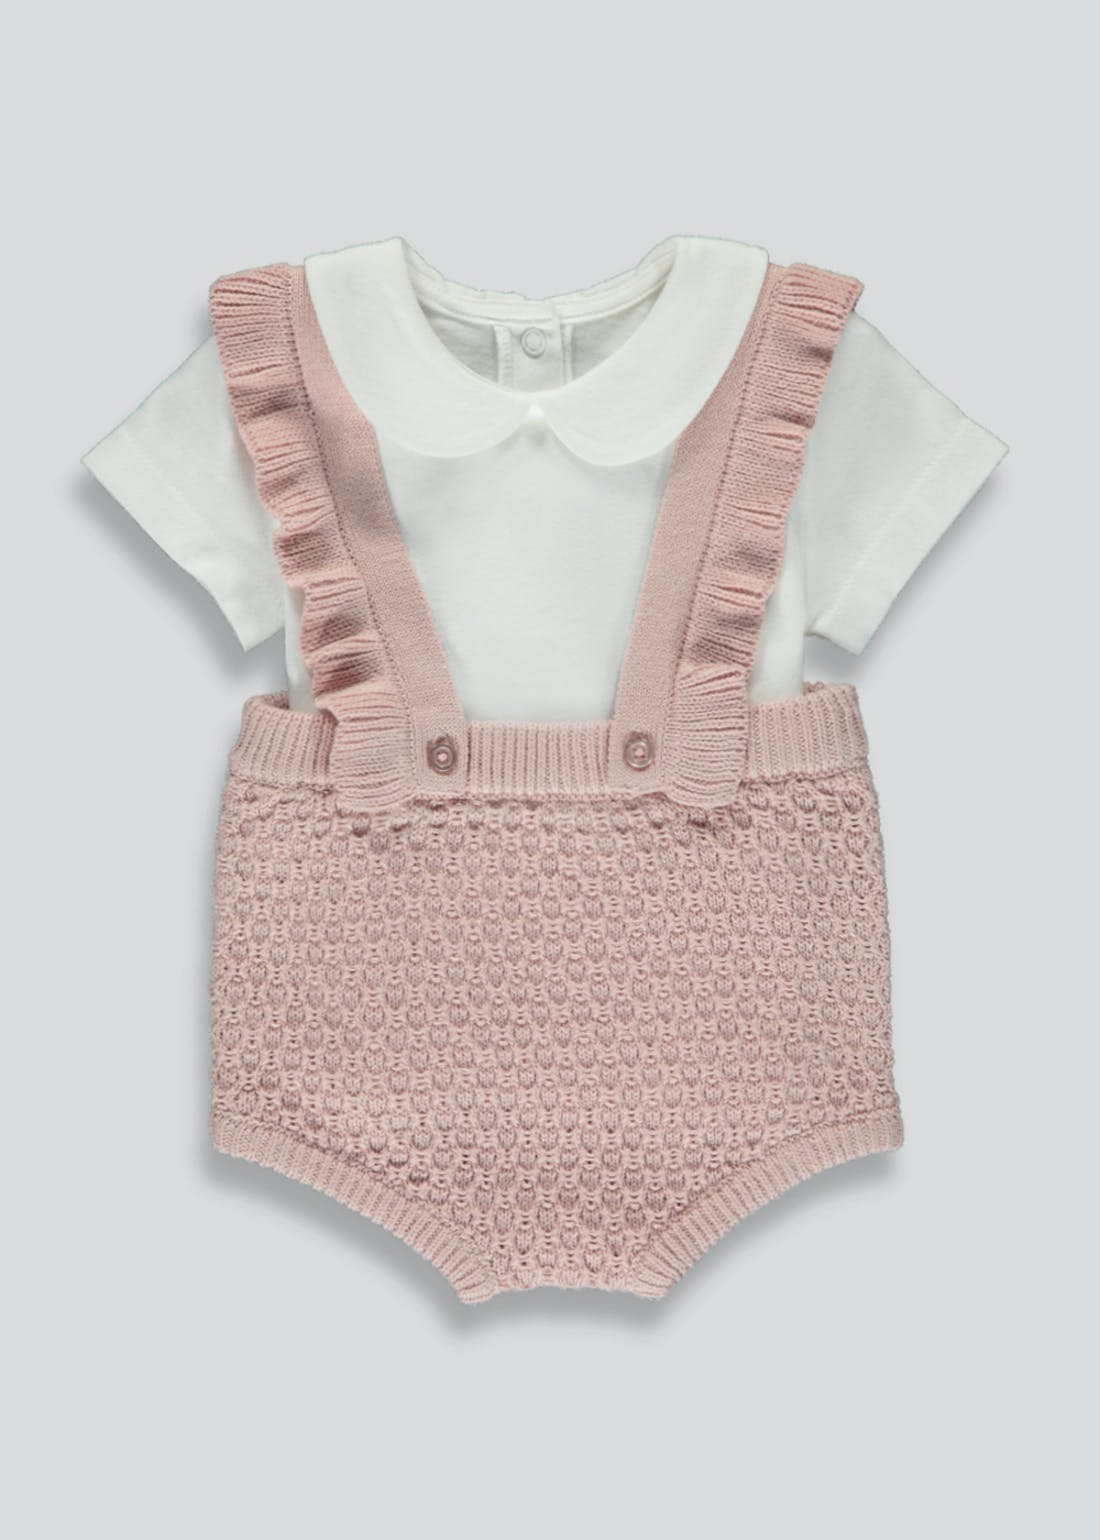 Girls Knitted Frill Romper Set (Tiny Baby-23mths)